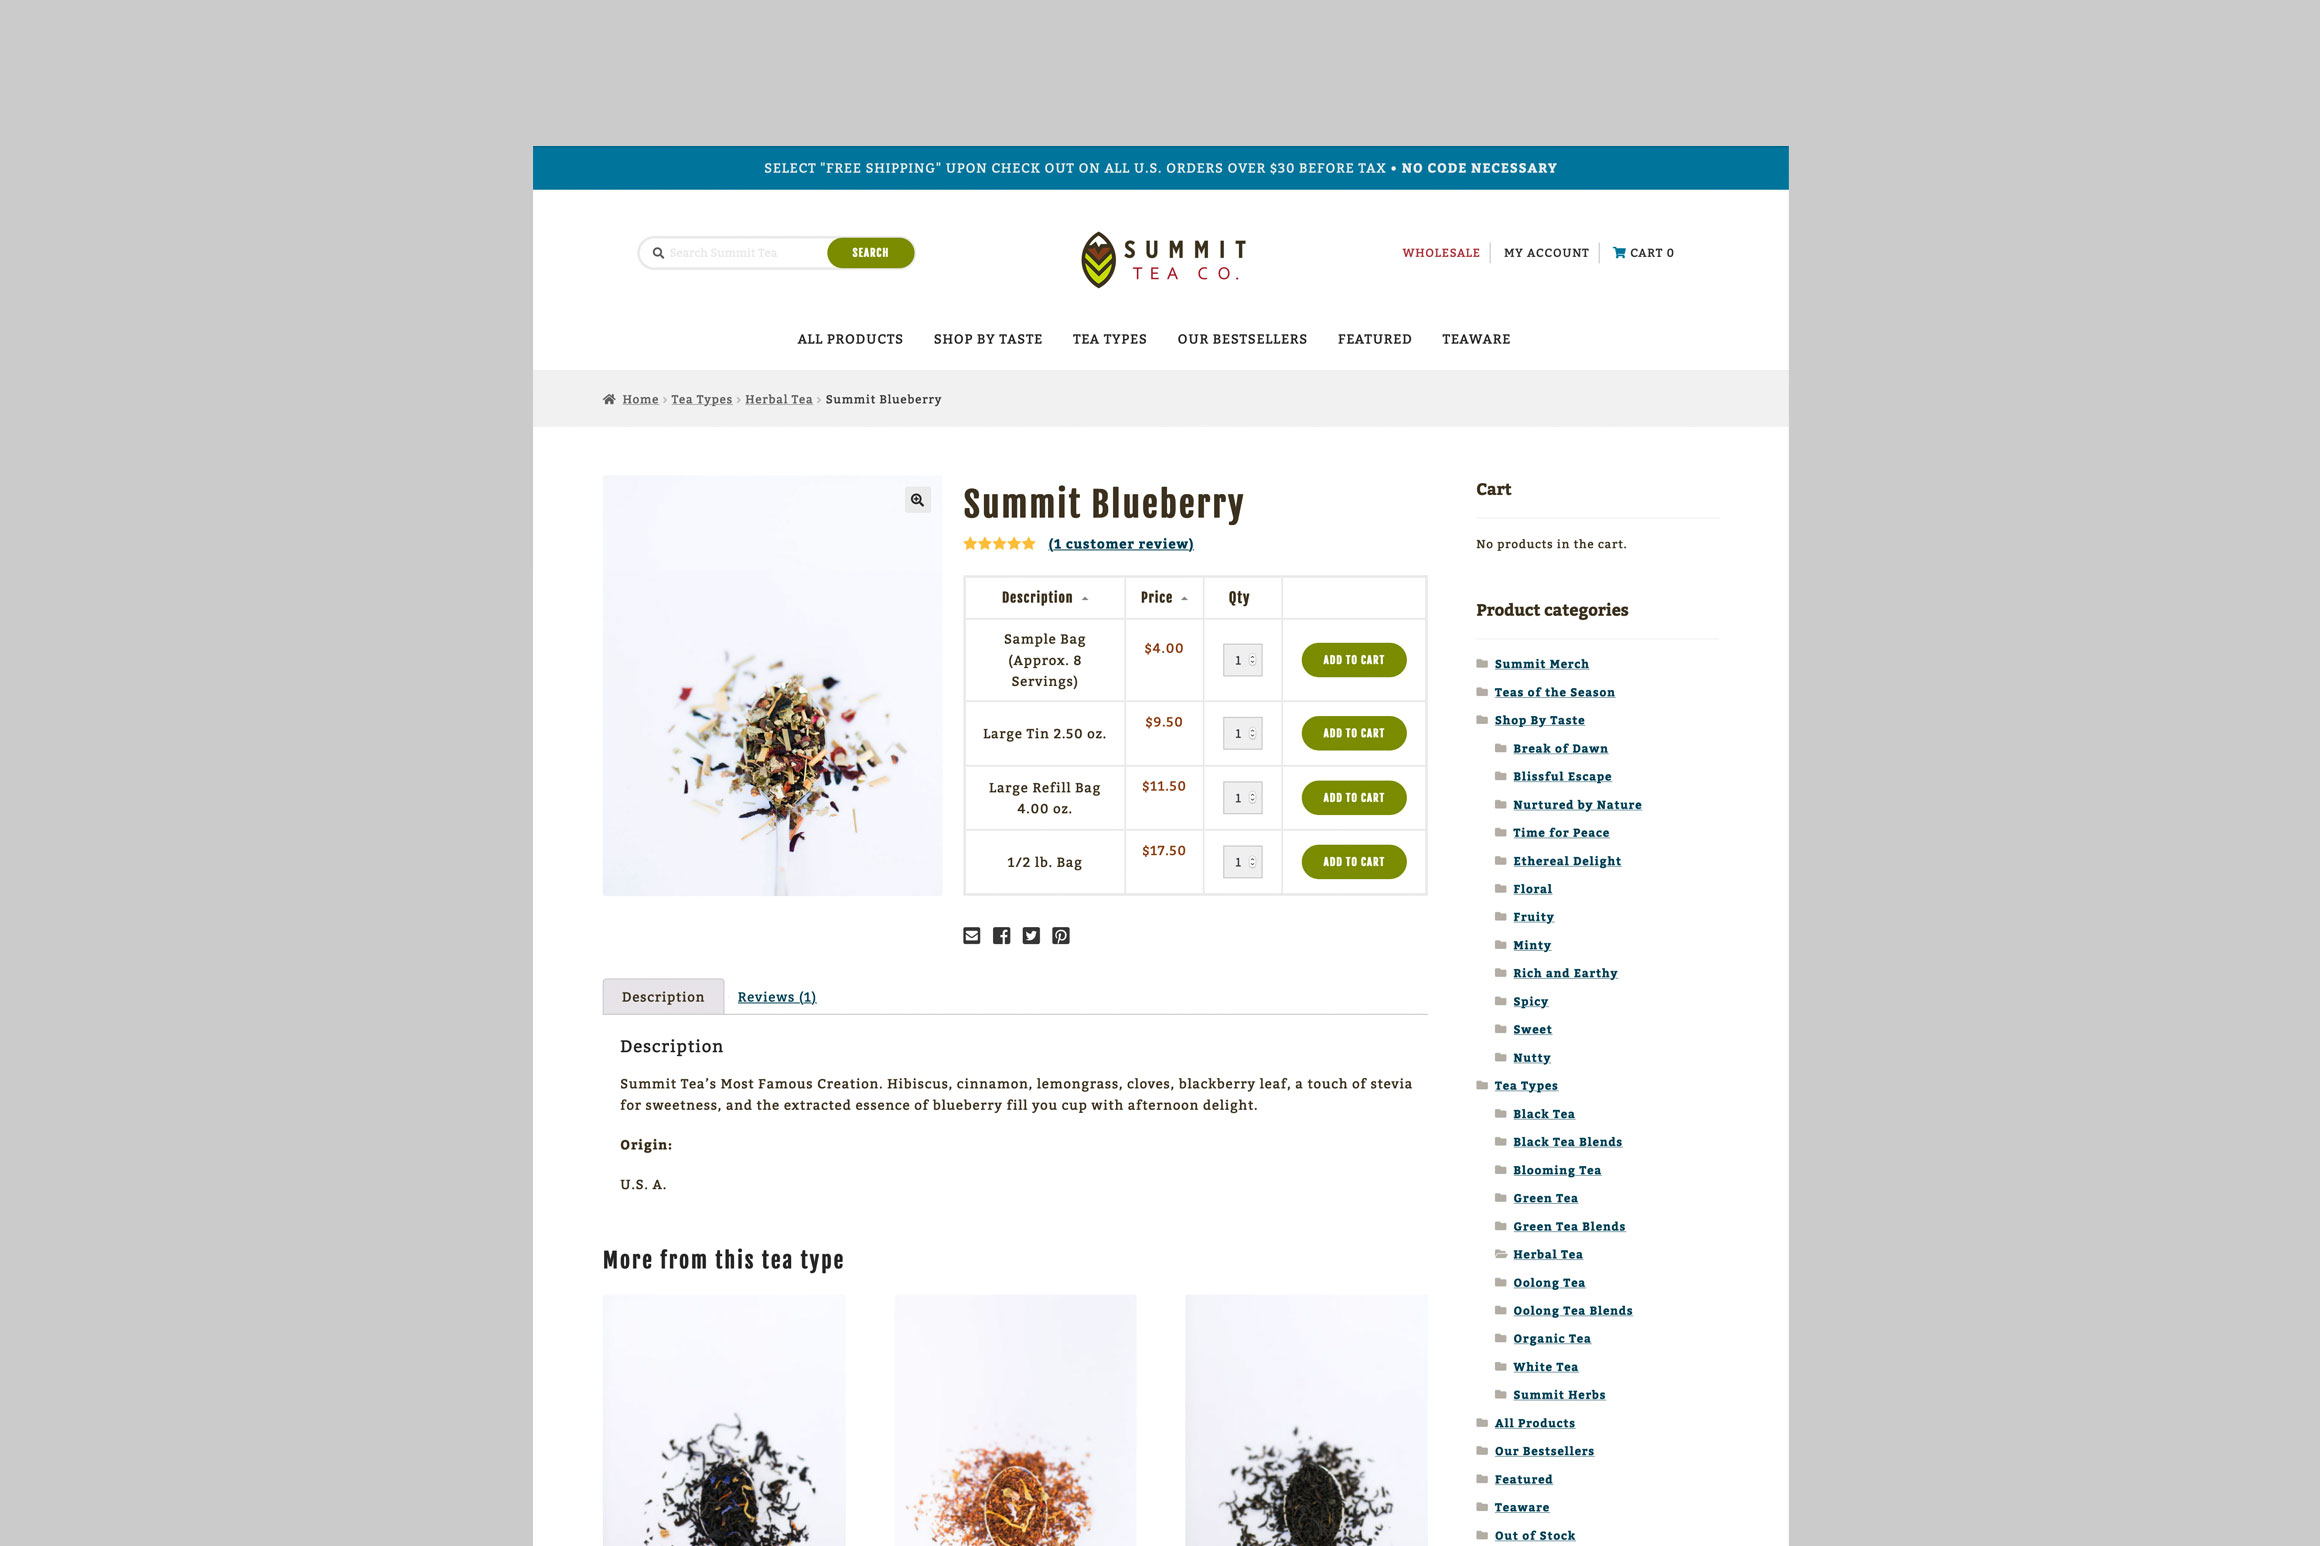 Summit Tea Product Page